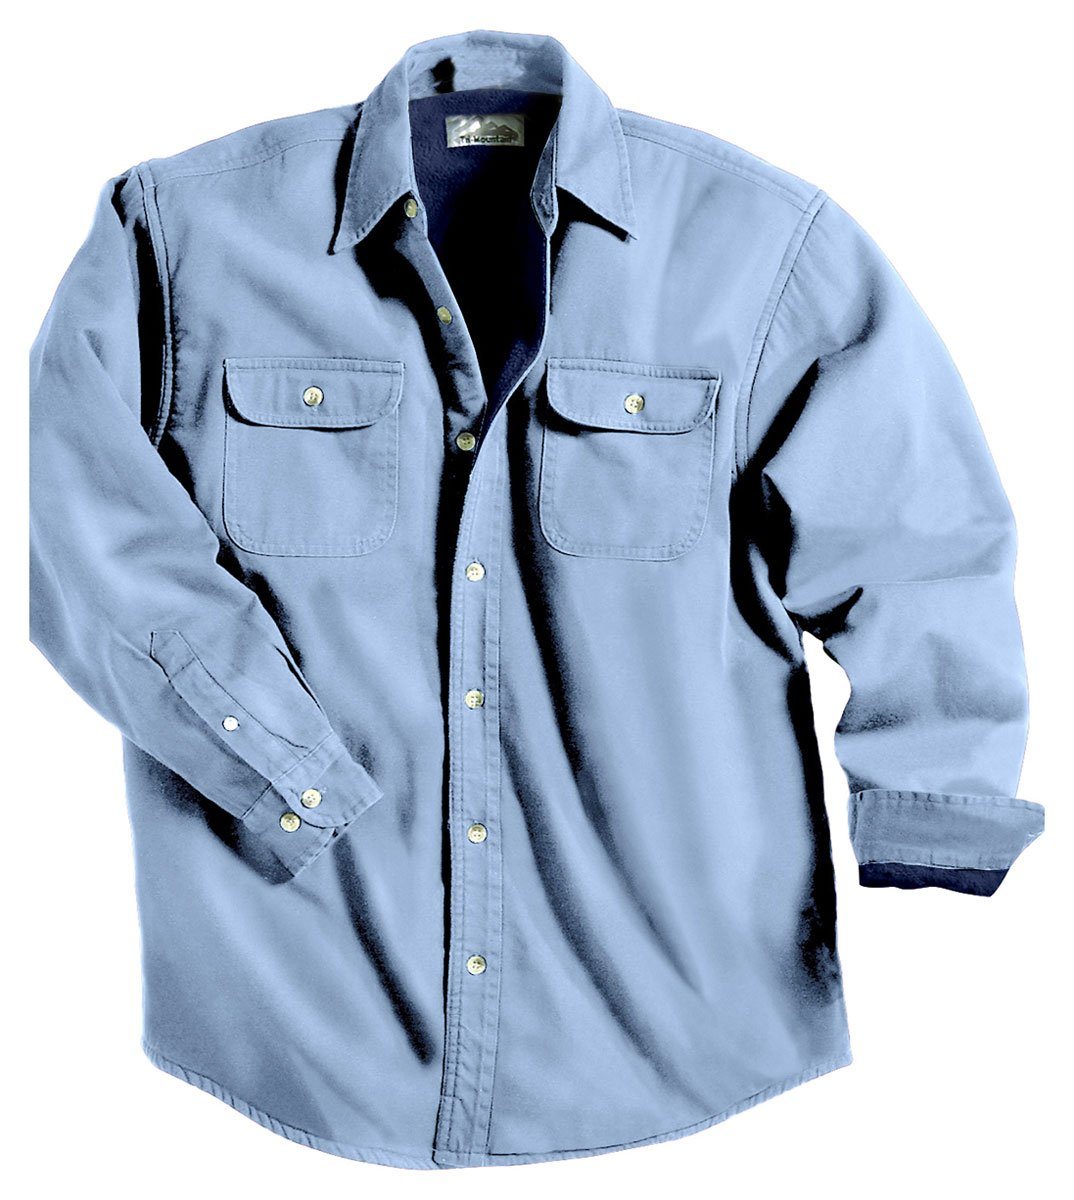 Tahoe Denim Shirt Jacket with Fleece Lining, Color: Light Indigo/Navy, Size: XX-Large Tall by Tri-Mountain